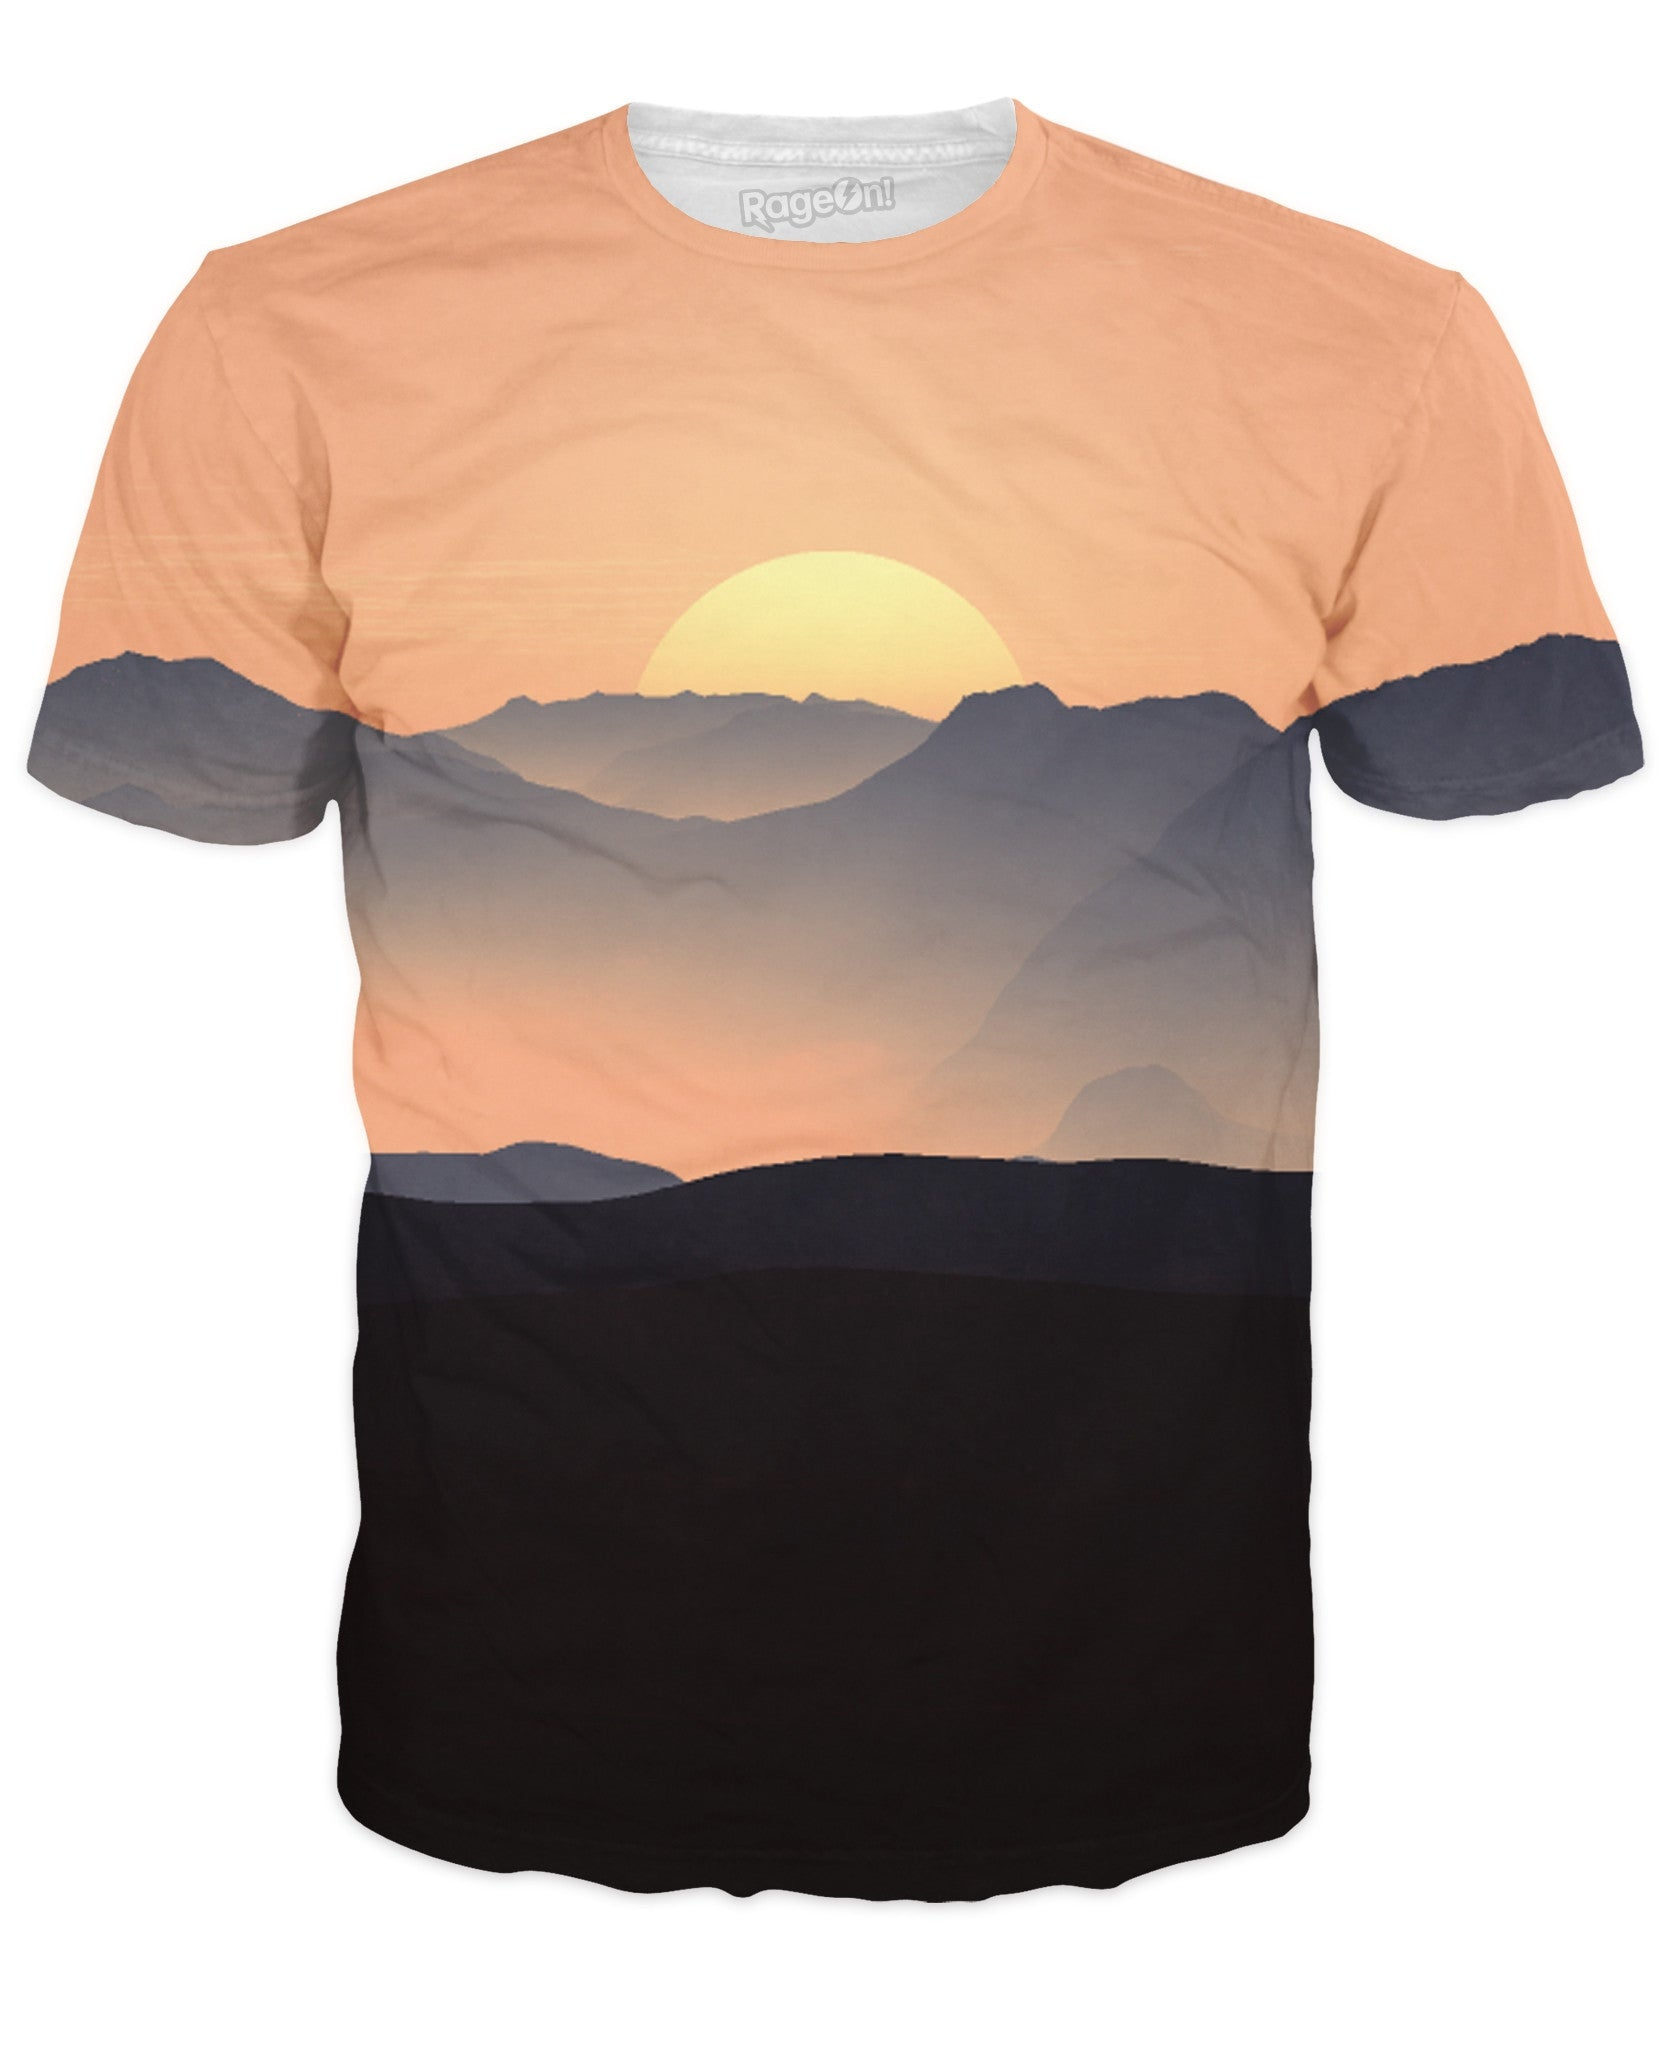 Evening Sunset T-Shirt